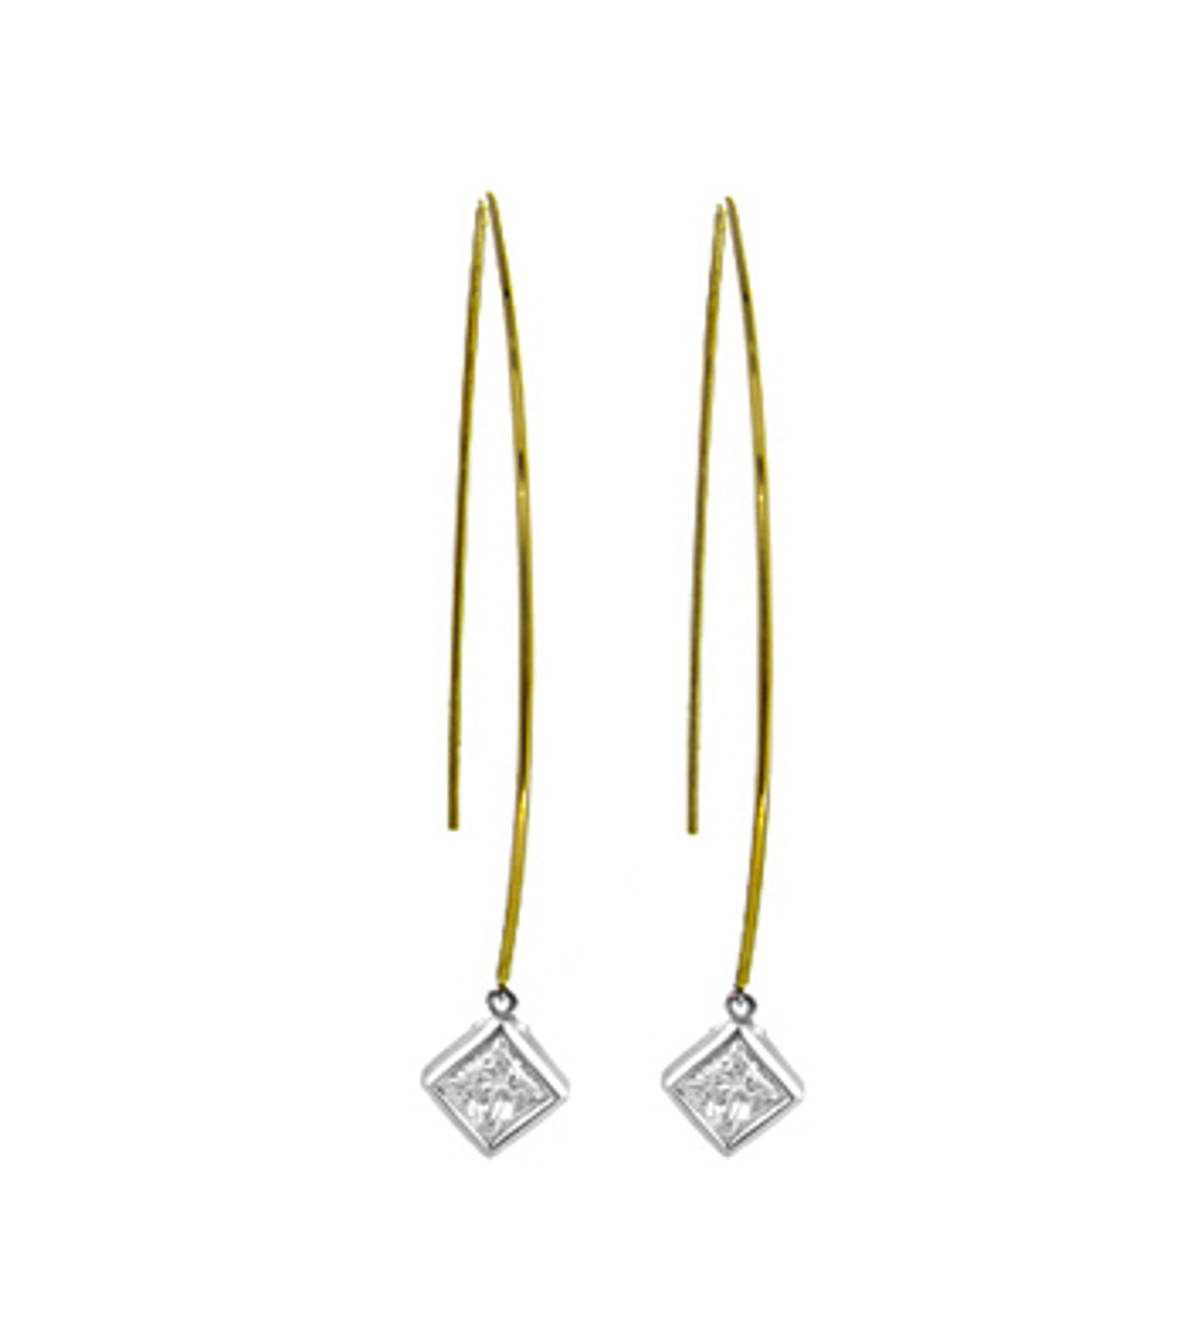 9k yellow and white gold single stone princess cut diamond rubover set hoop earringsDETAILSCarat: total diamond weight 0.32cts SIZE & FITThis item's measurements are:Drop  6.3cm